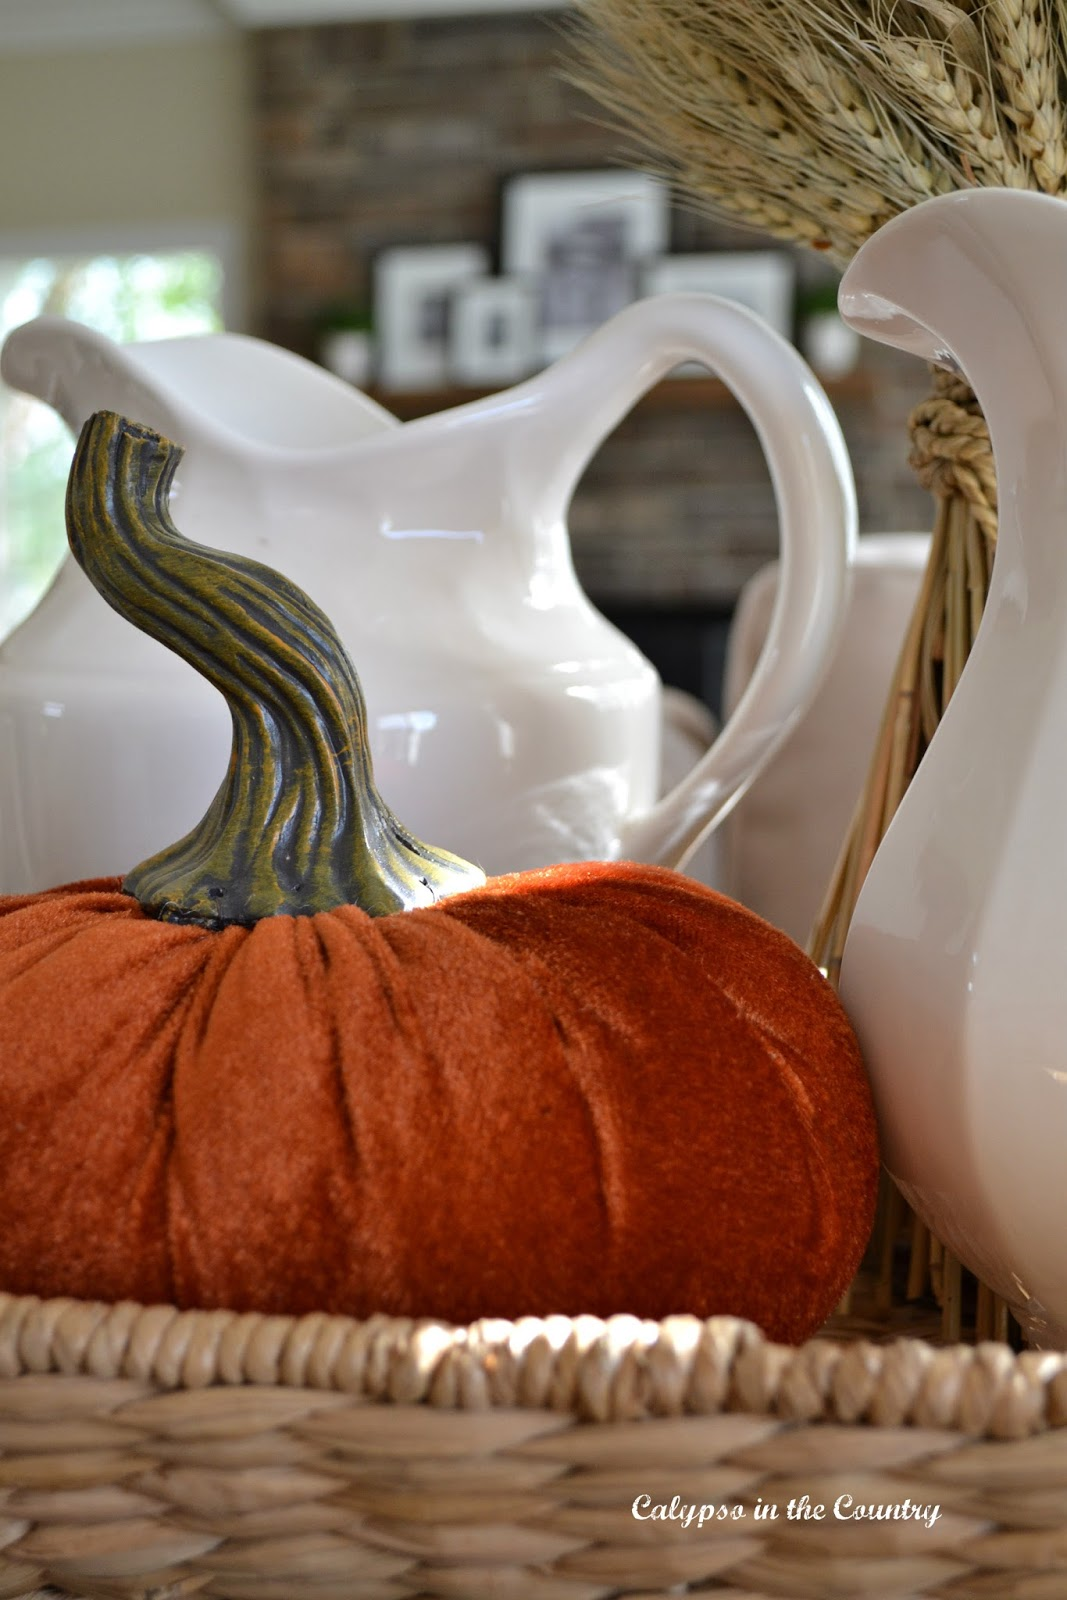 Festive Fall Vignette with Orange Velvet Pumpkin